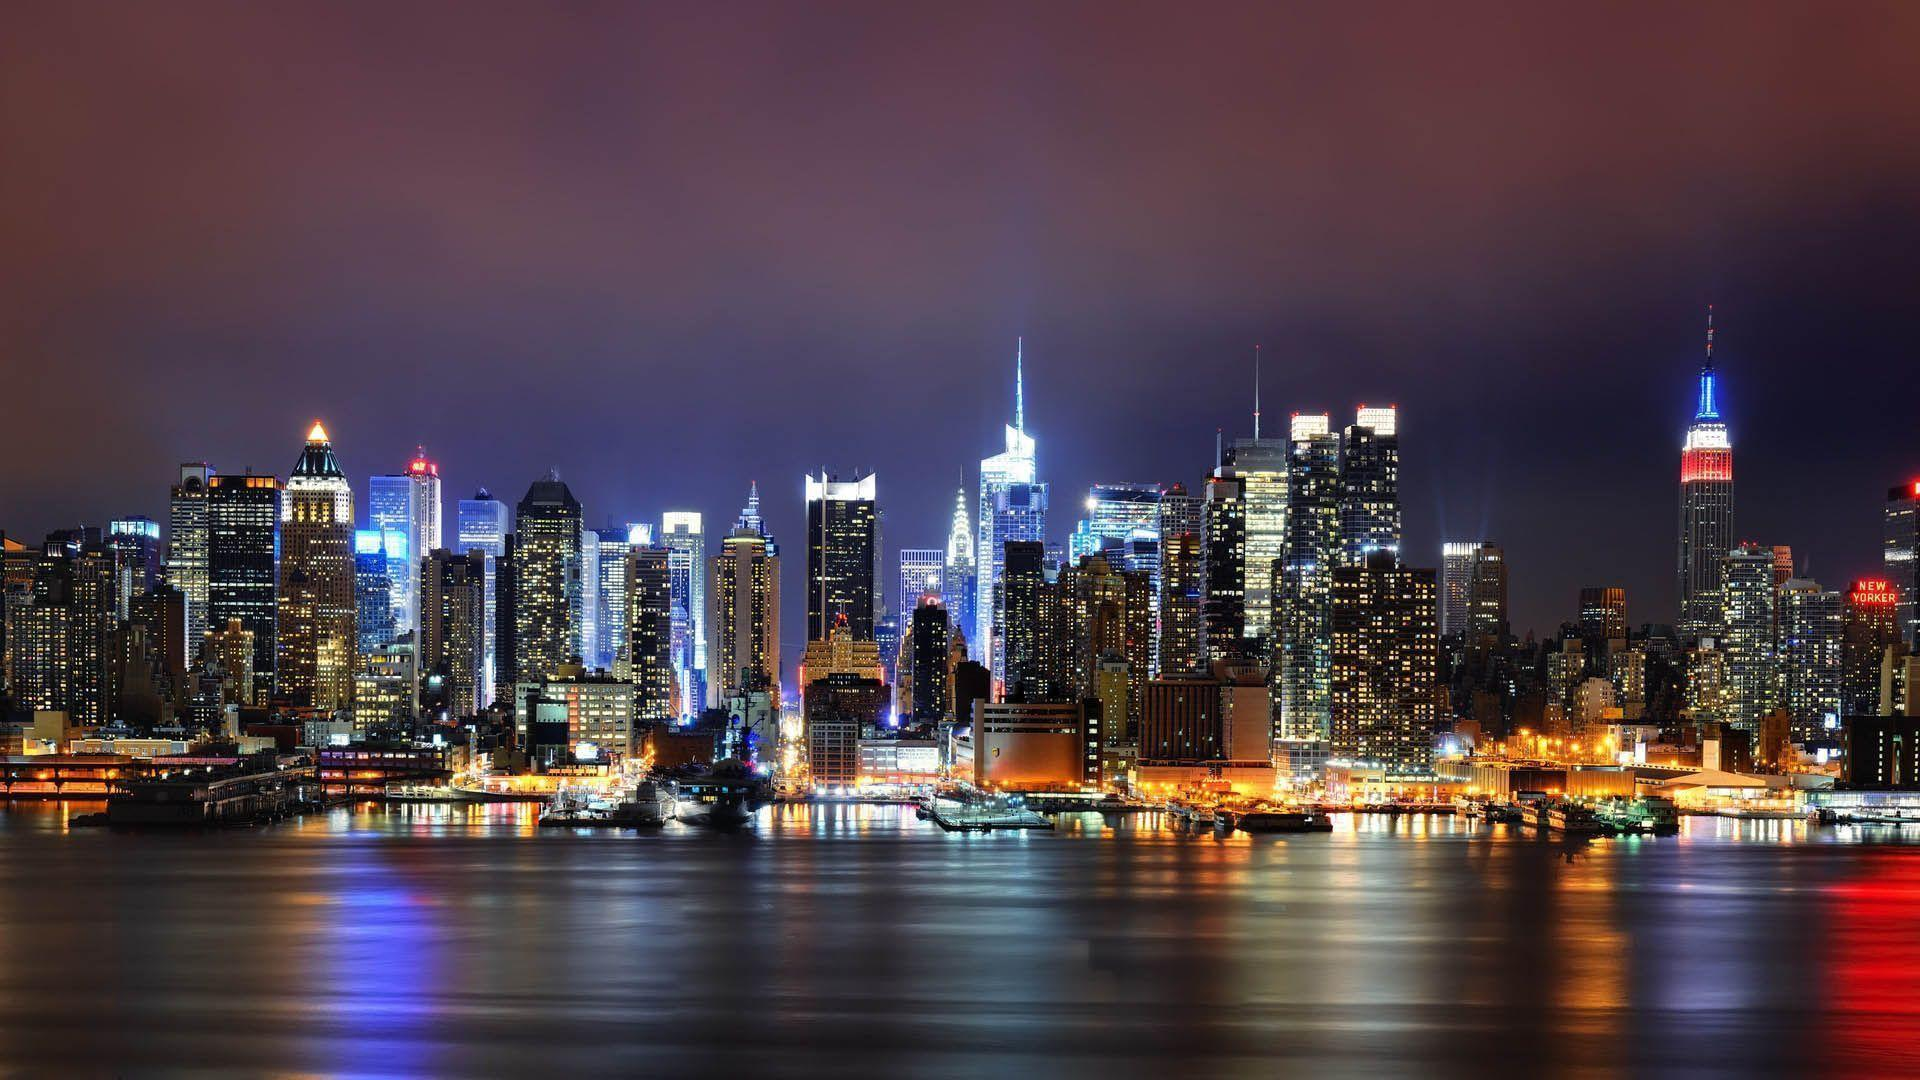 Hd New York City Wallpapers and Backgrounds